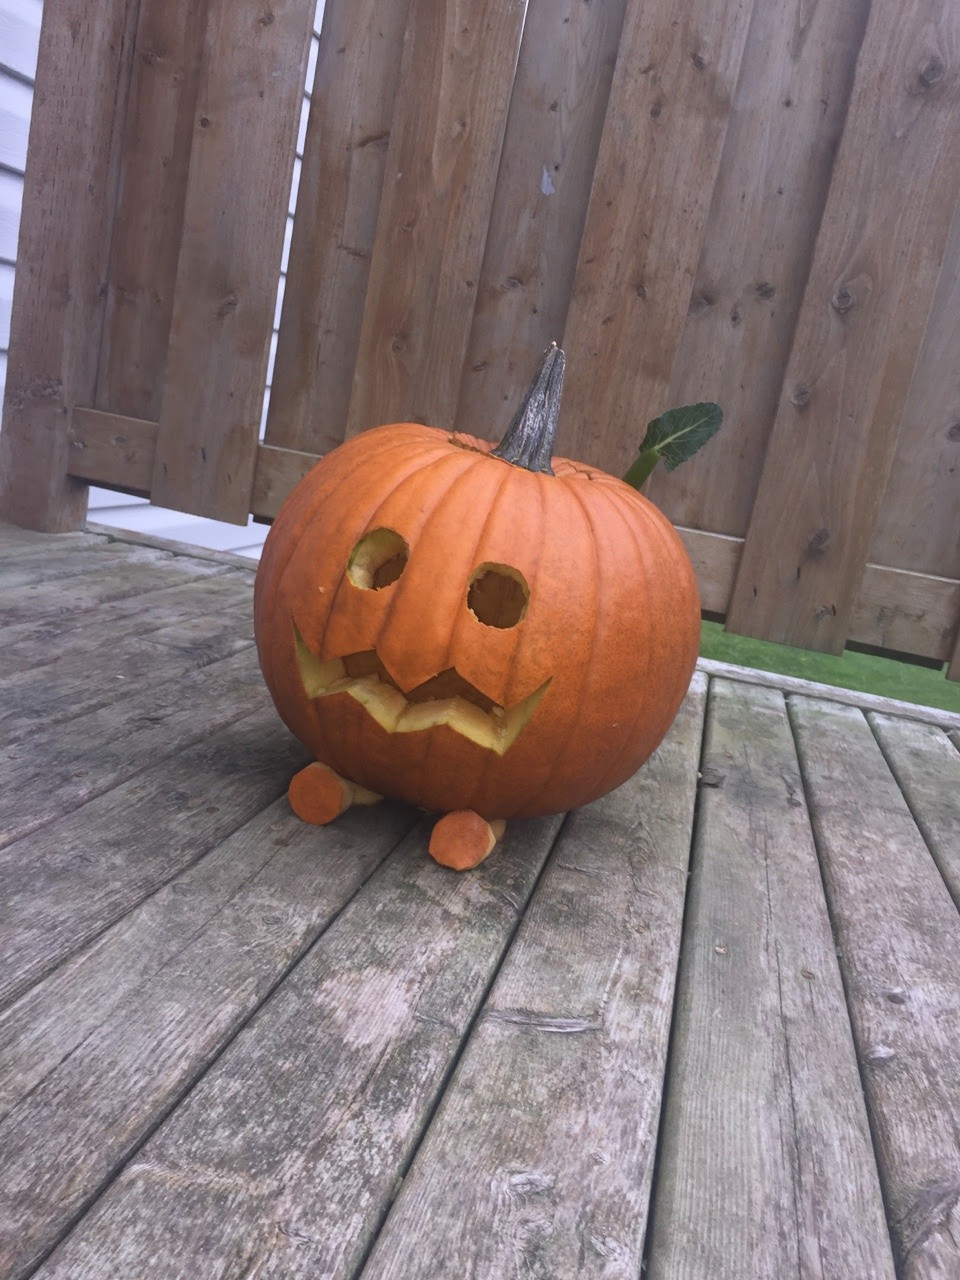 I'm not sure if it's cute or gruesome that I carved a pumpkin to look like this little guy